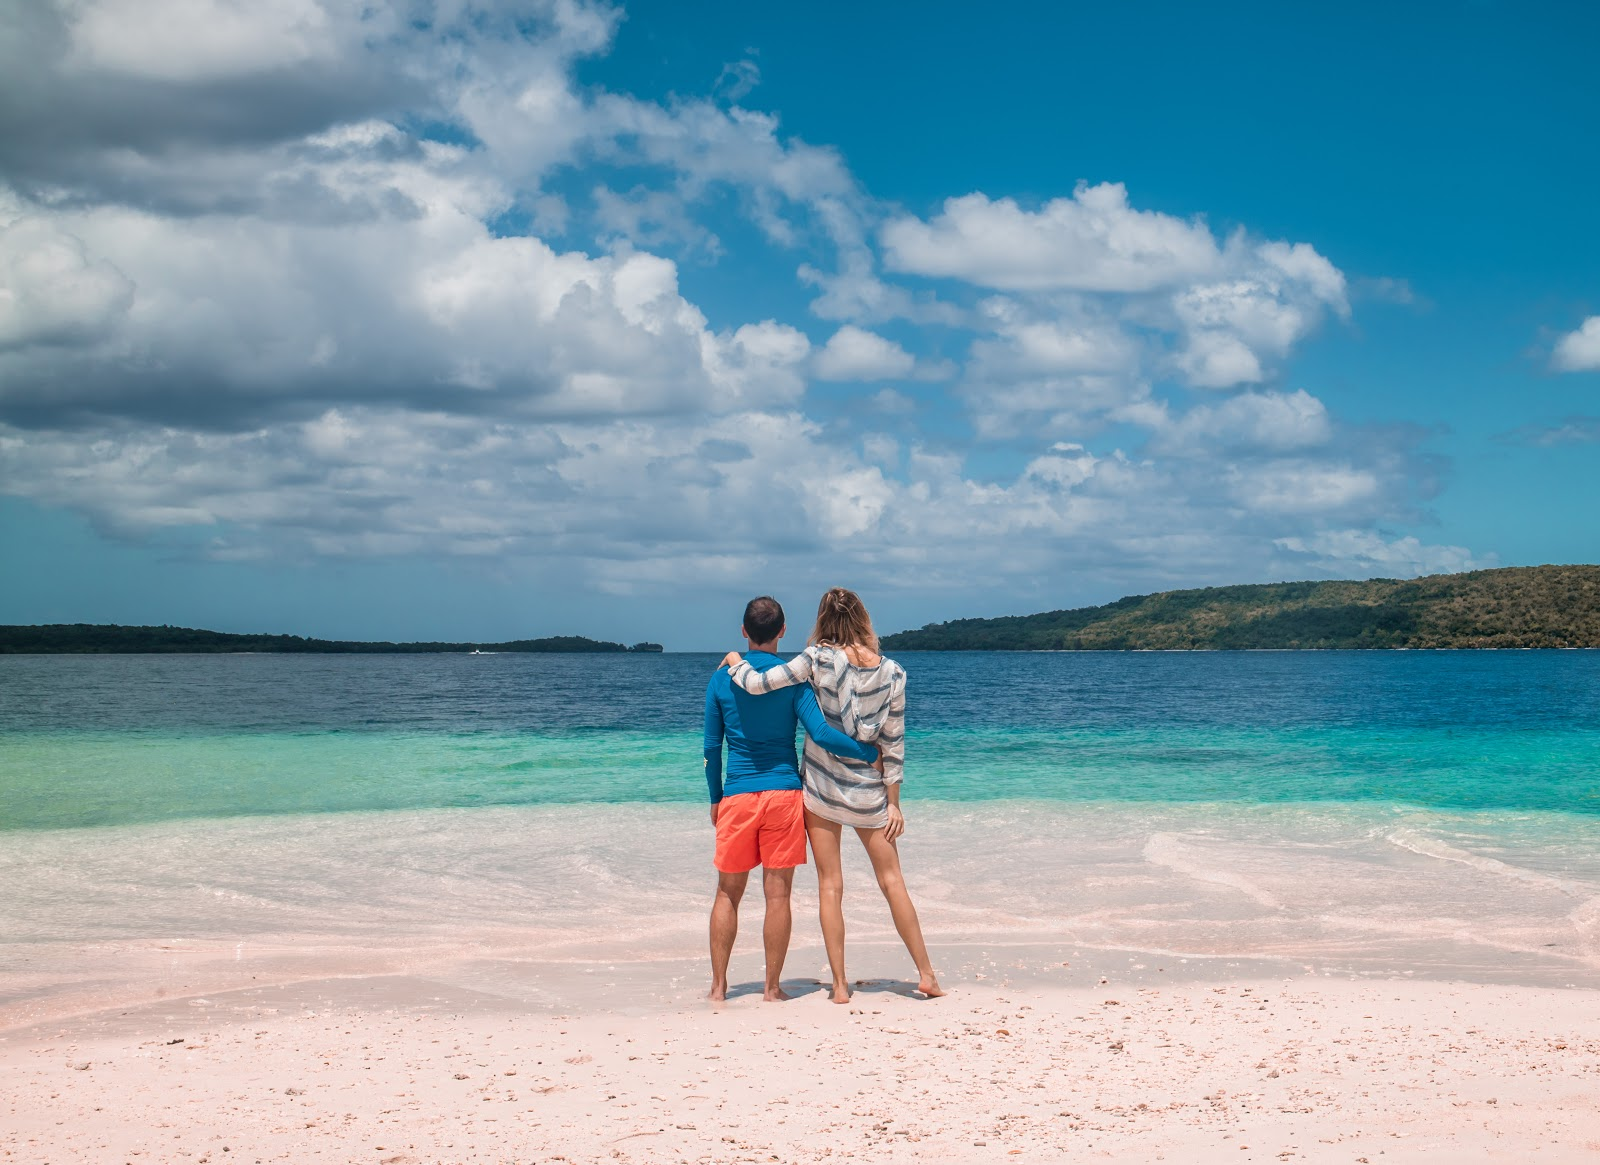 Beautiful beach and crystal clear water in Vanuatu | Alison Hutchinson